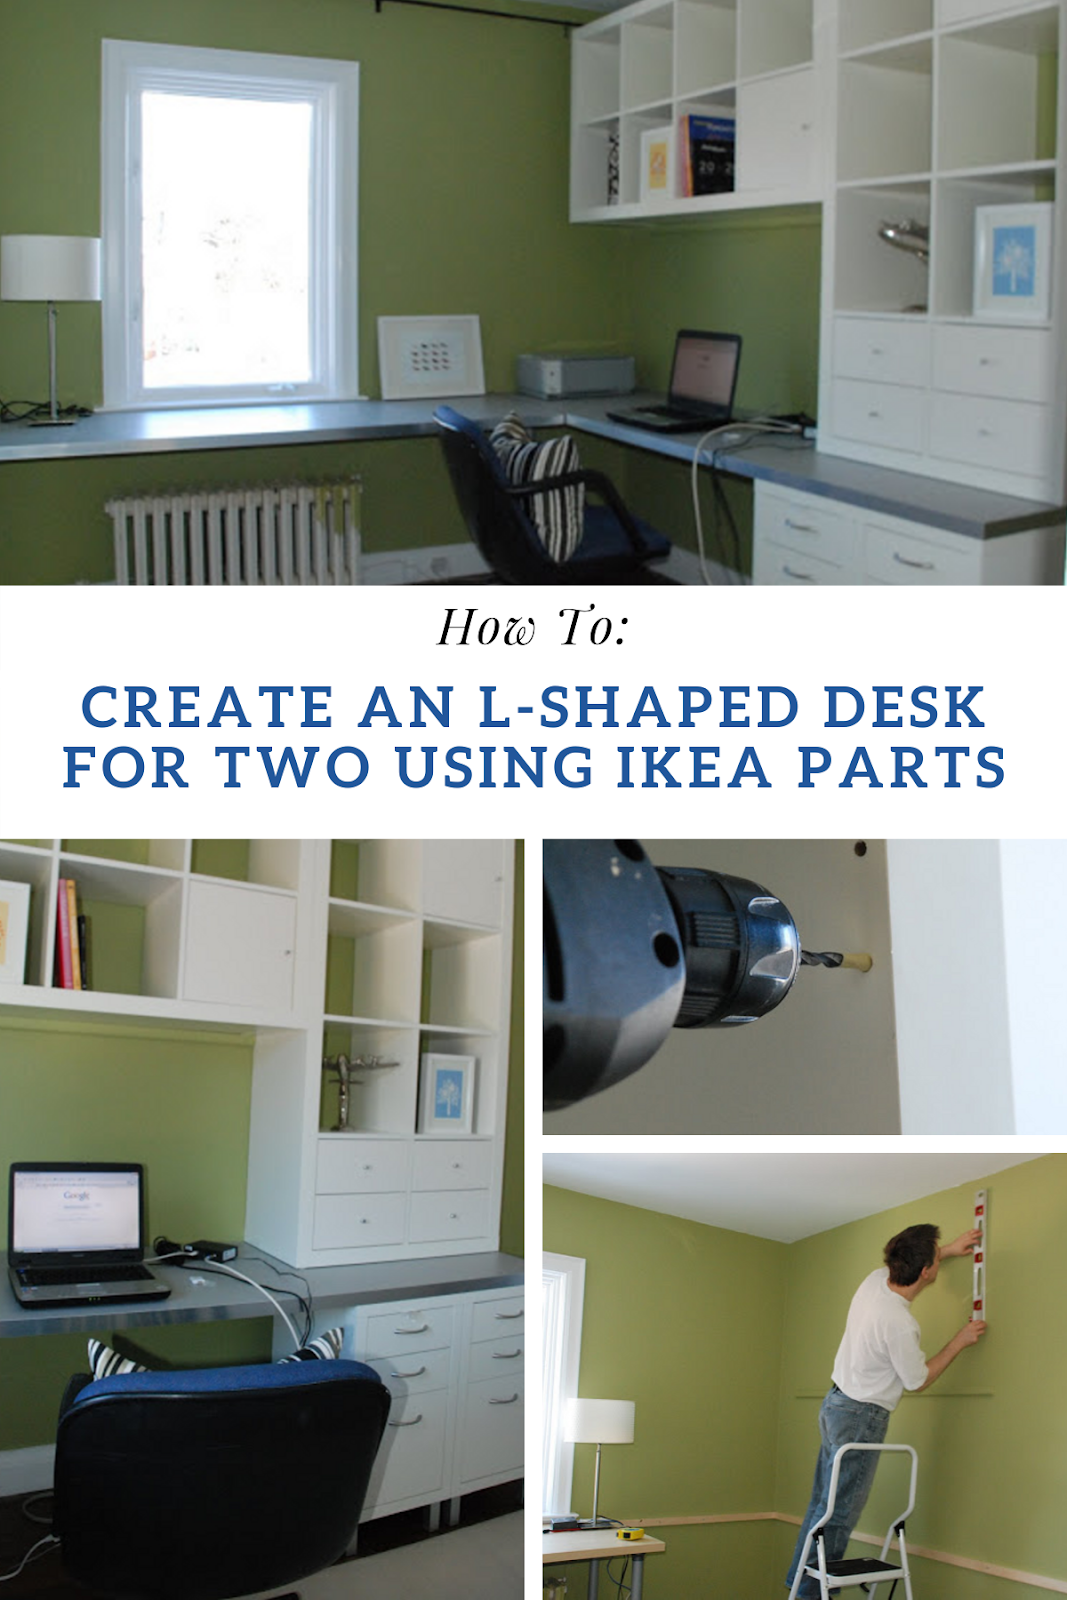 Buying Very Cheap Office Furniture Correctly In 2020 Ikea L